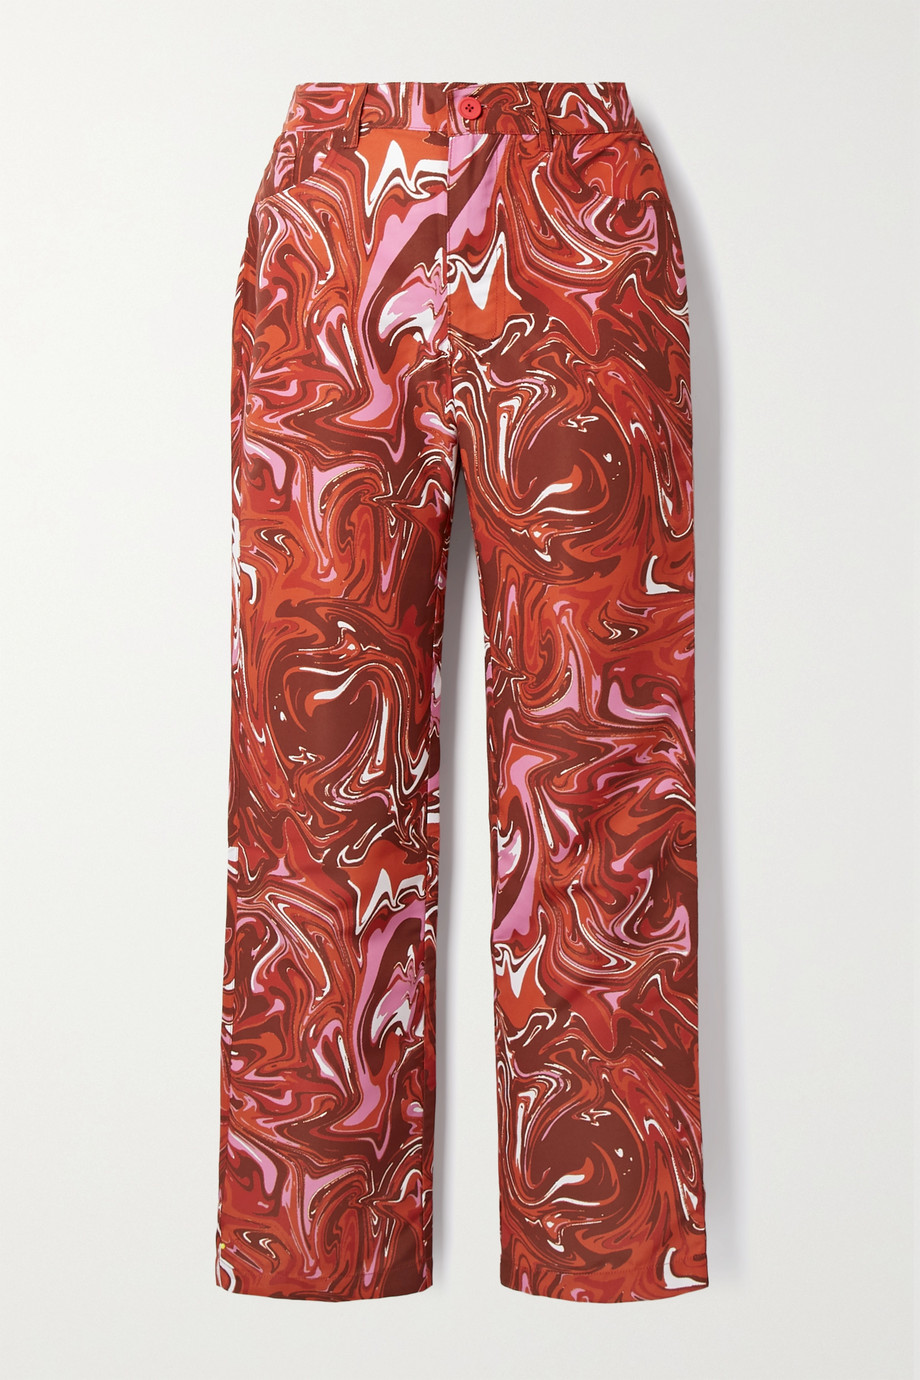 Maisie Wilen Jet printed shell straight-leg pants